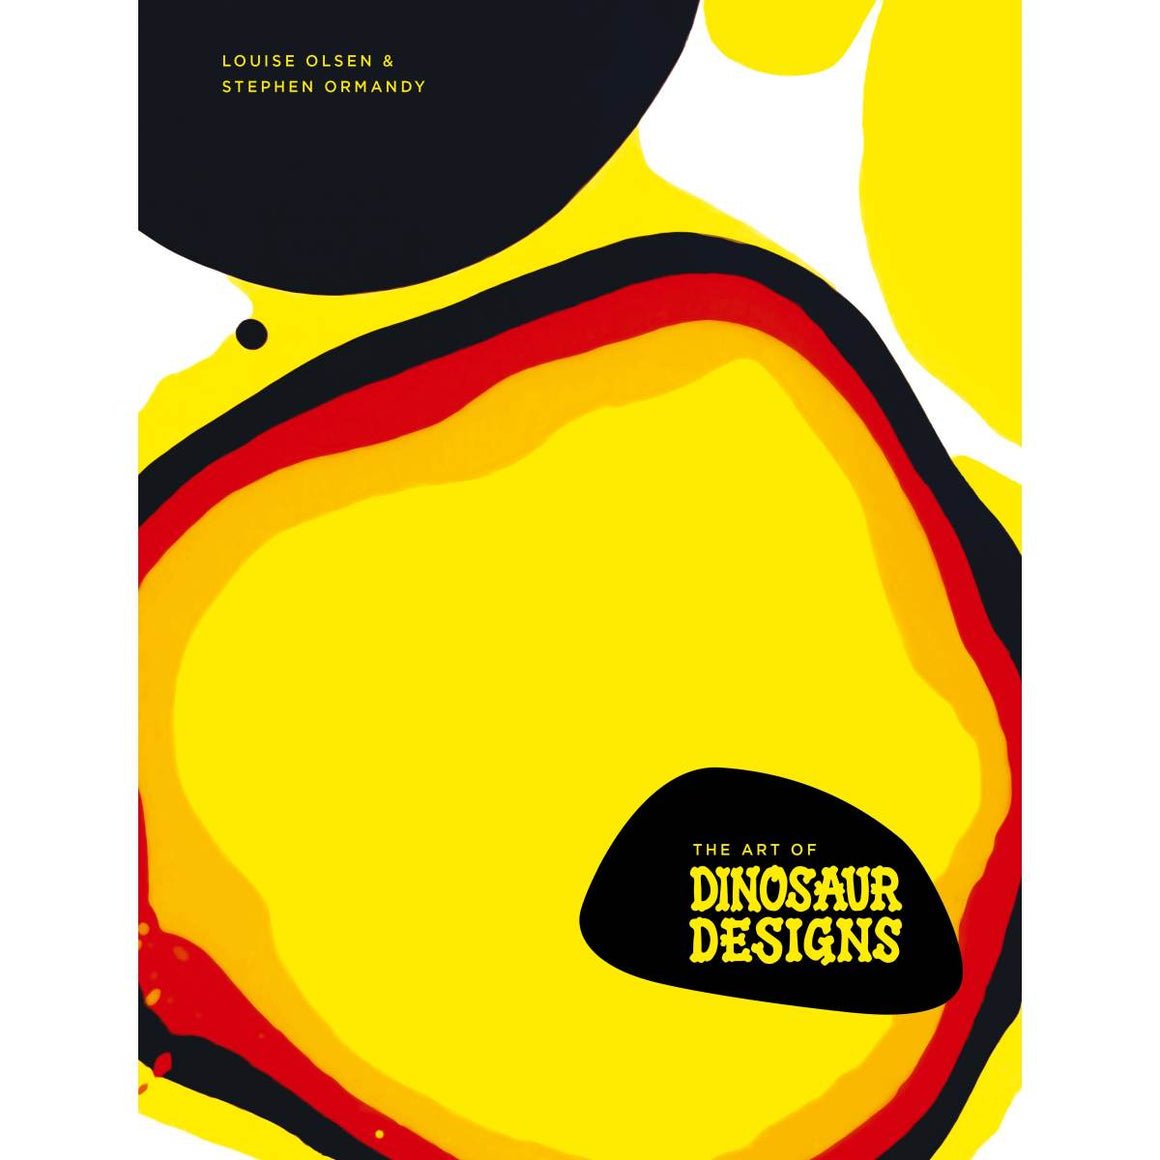 A book cover featuring an abstract design in Red, orange yellow black and white,.